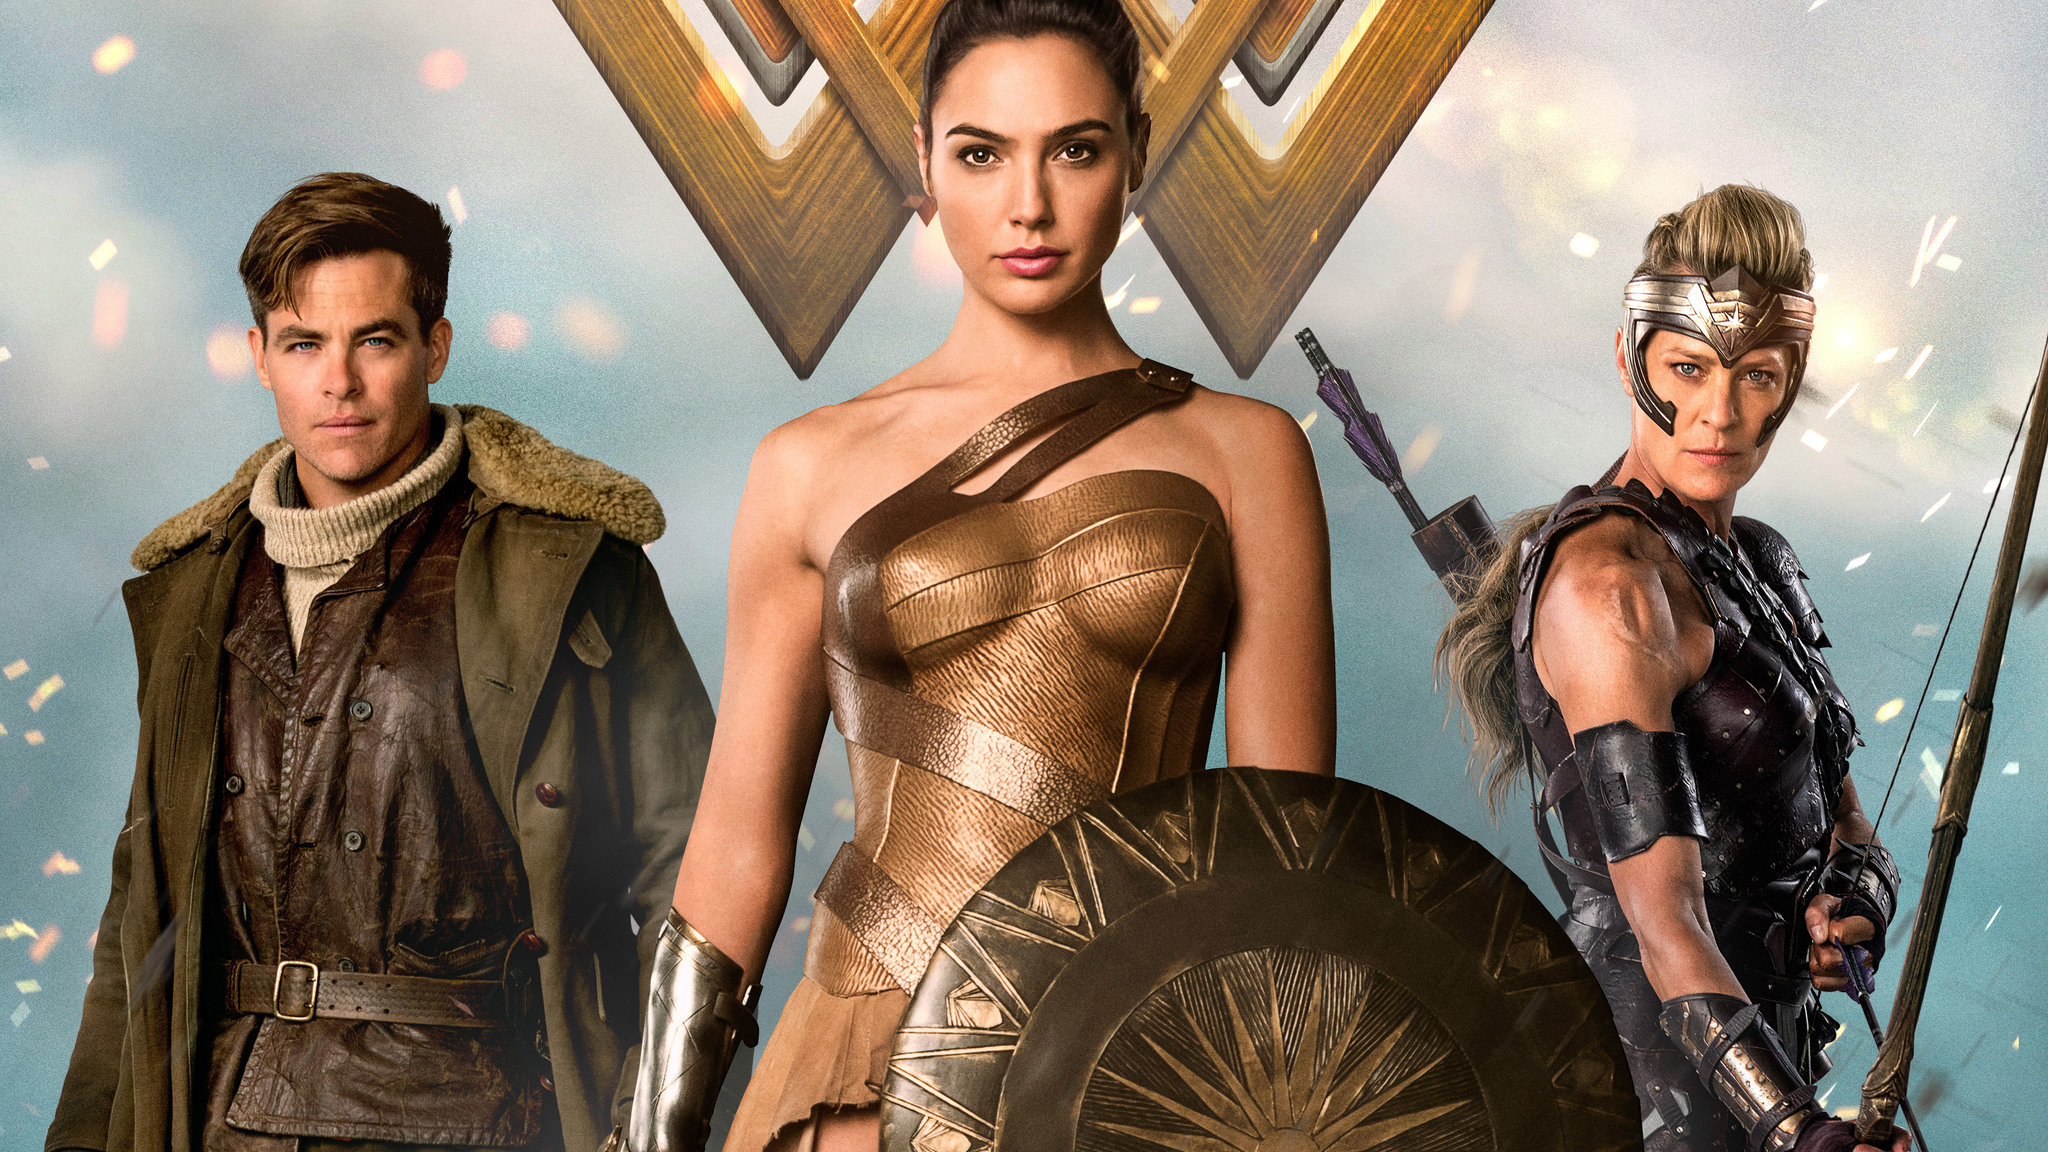 2017 Wonder Woman 4k Hd Movies 4k Wallpapers Images: 2048x1152 Wonder Woman 4k 2017 2048x1152 Resolution HD 4k